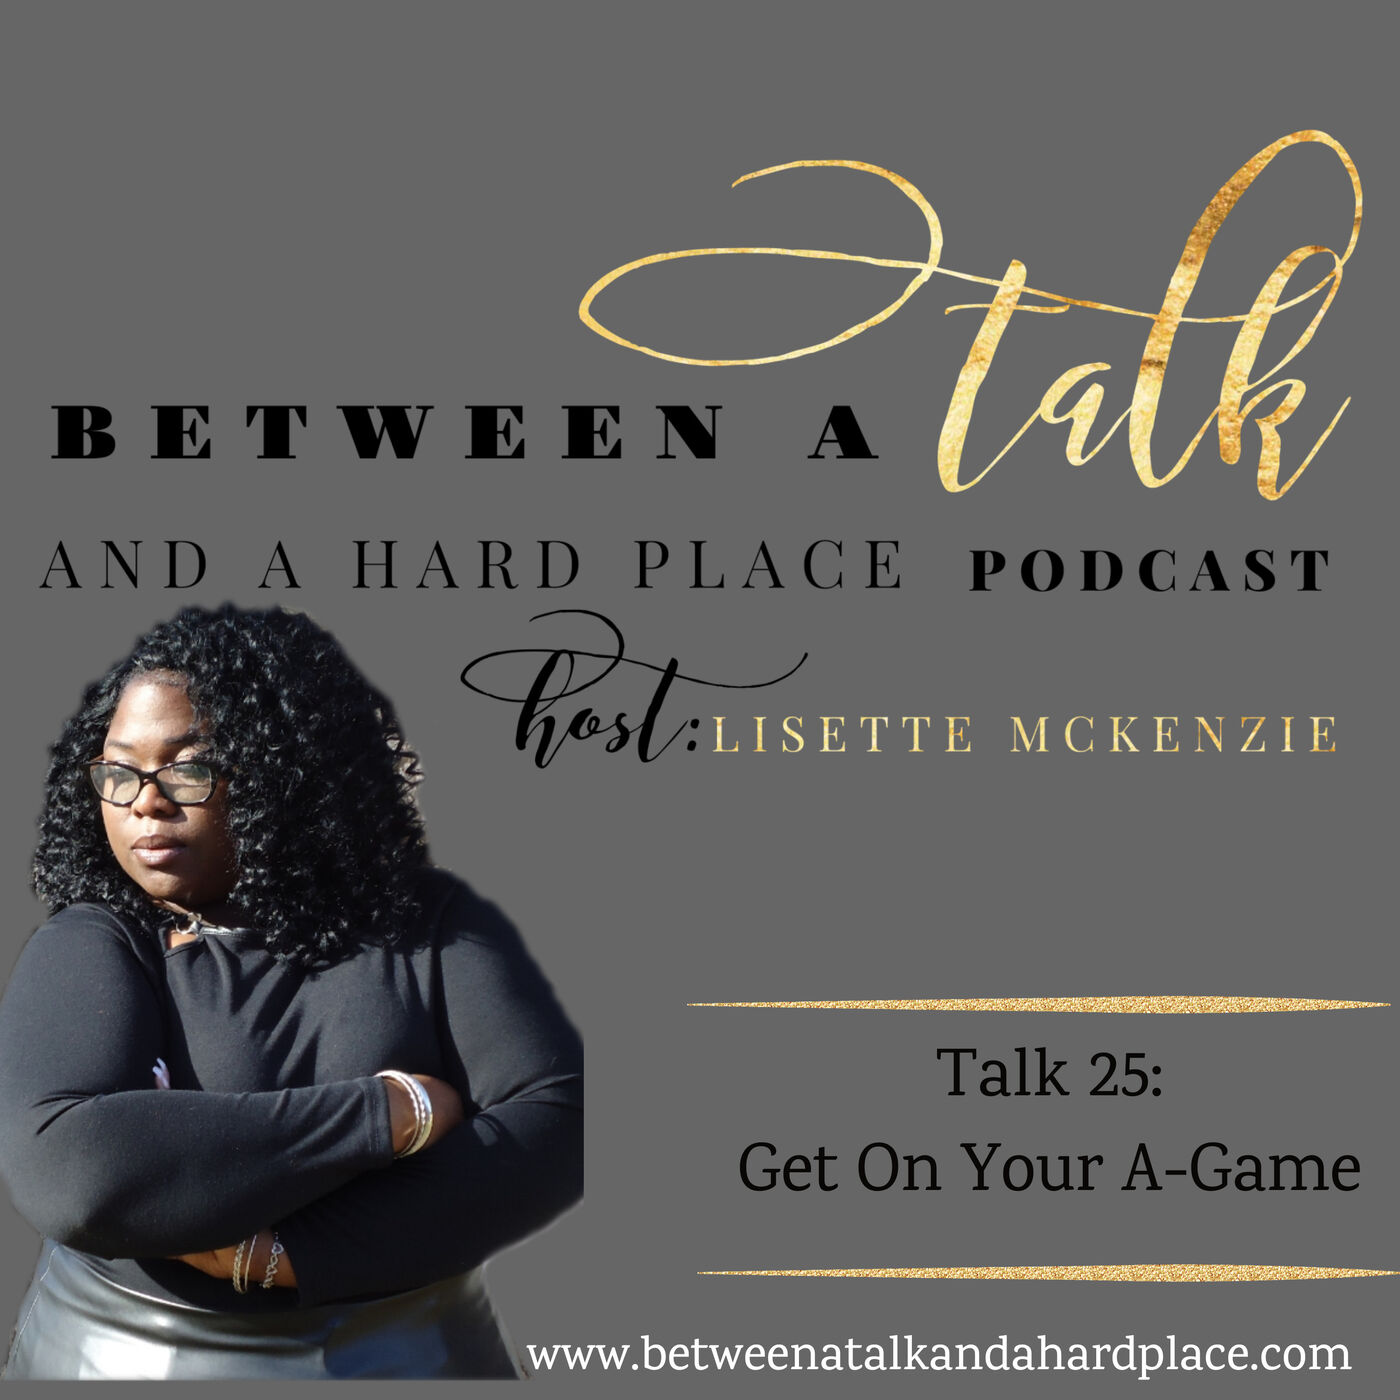 Talk 25: Get On Your A-Game